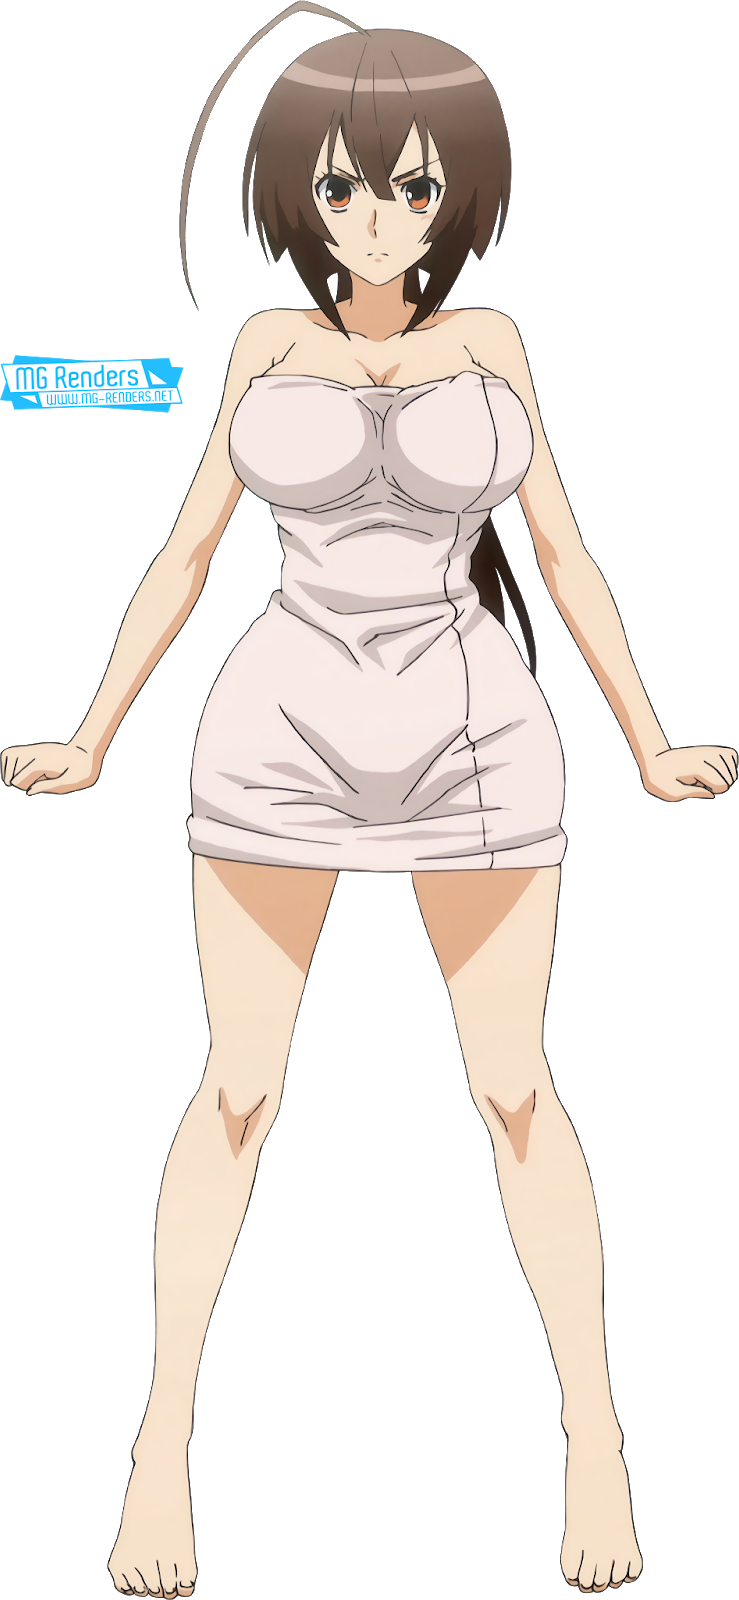 Tags: Anime, Render,  Feet,  Full body,  Huge Breasts,  Musubi,  Sekirei, PNG, Image, Picture